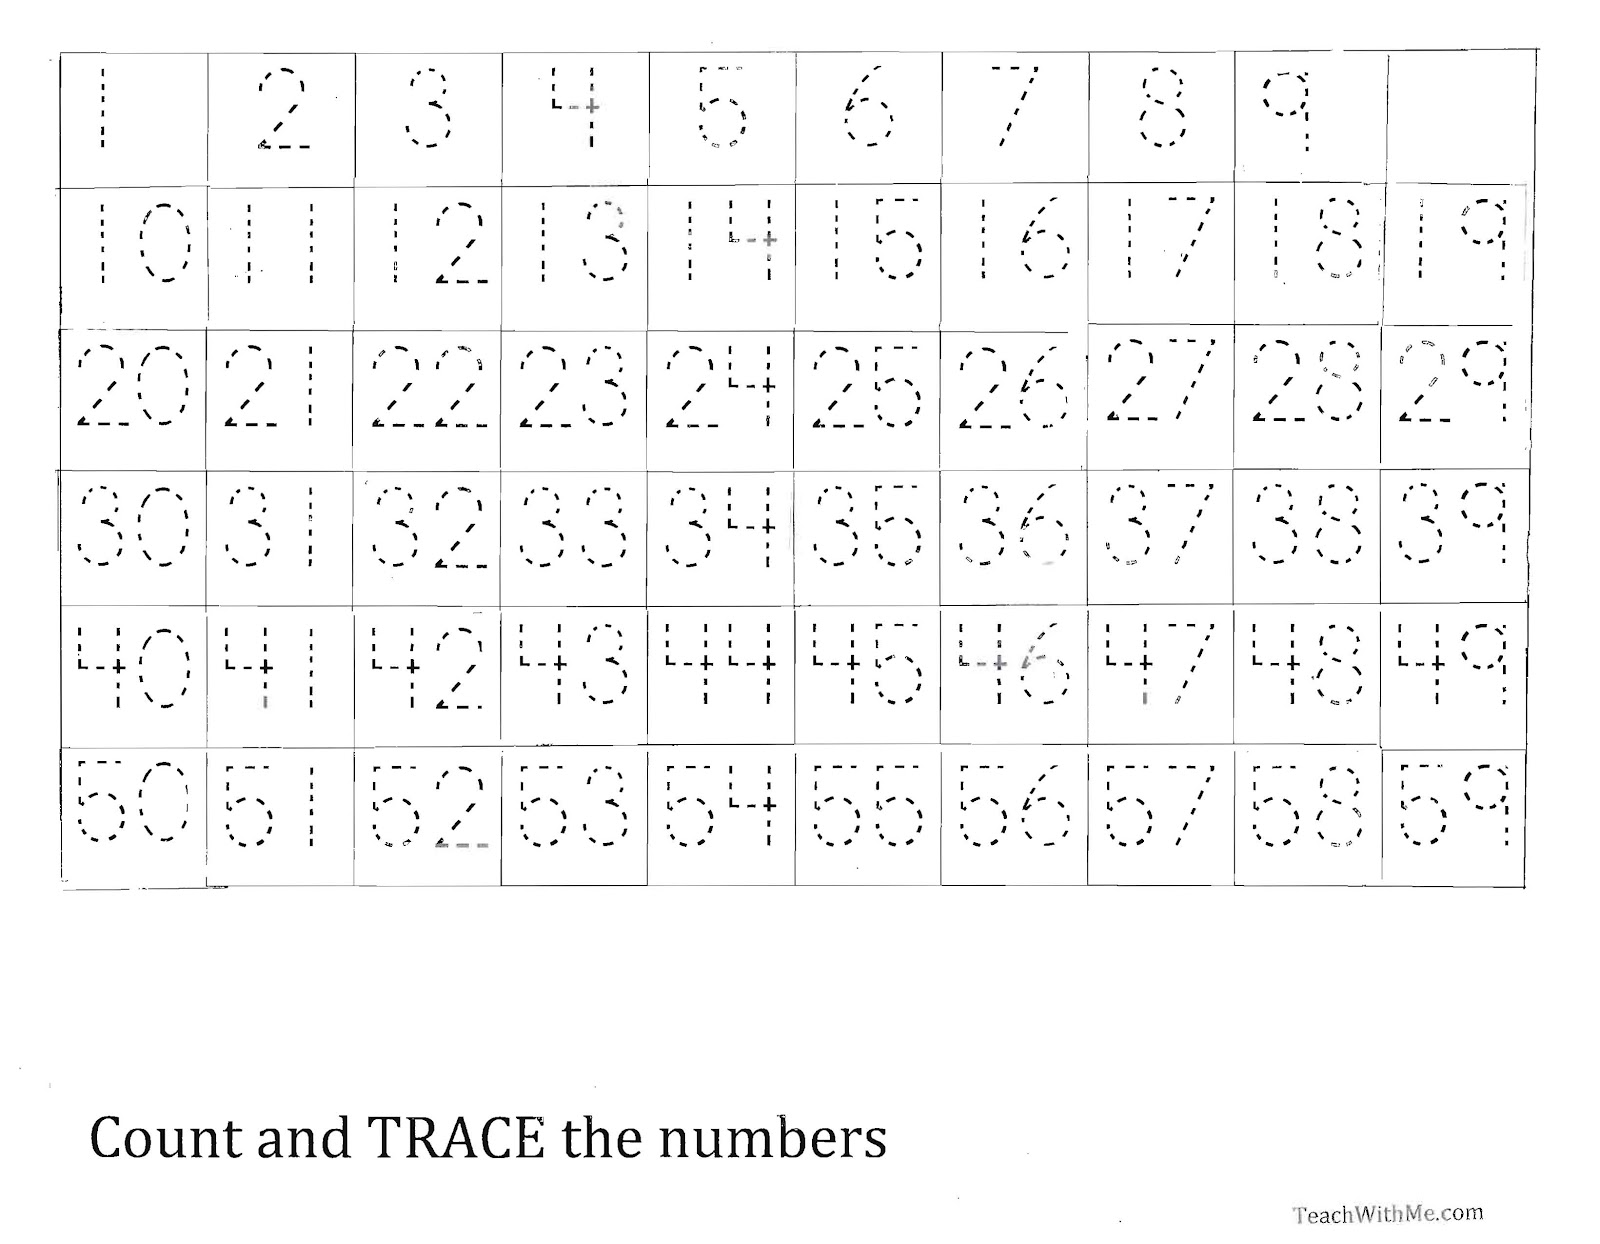 Traceable 100 Charts